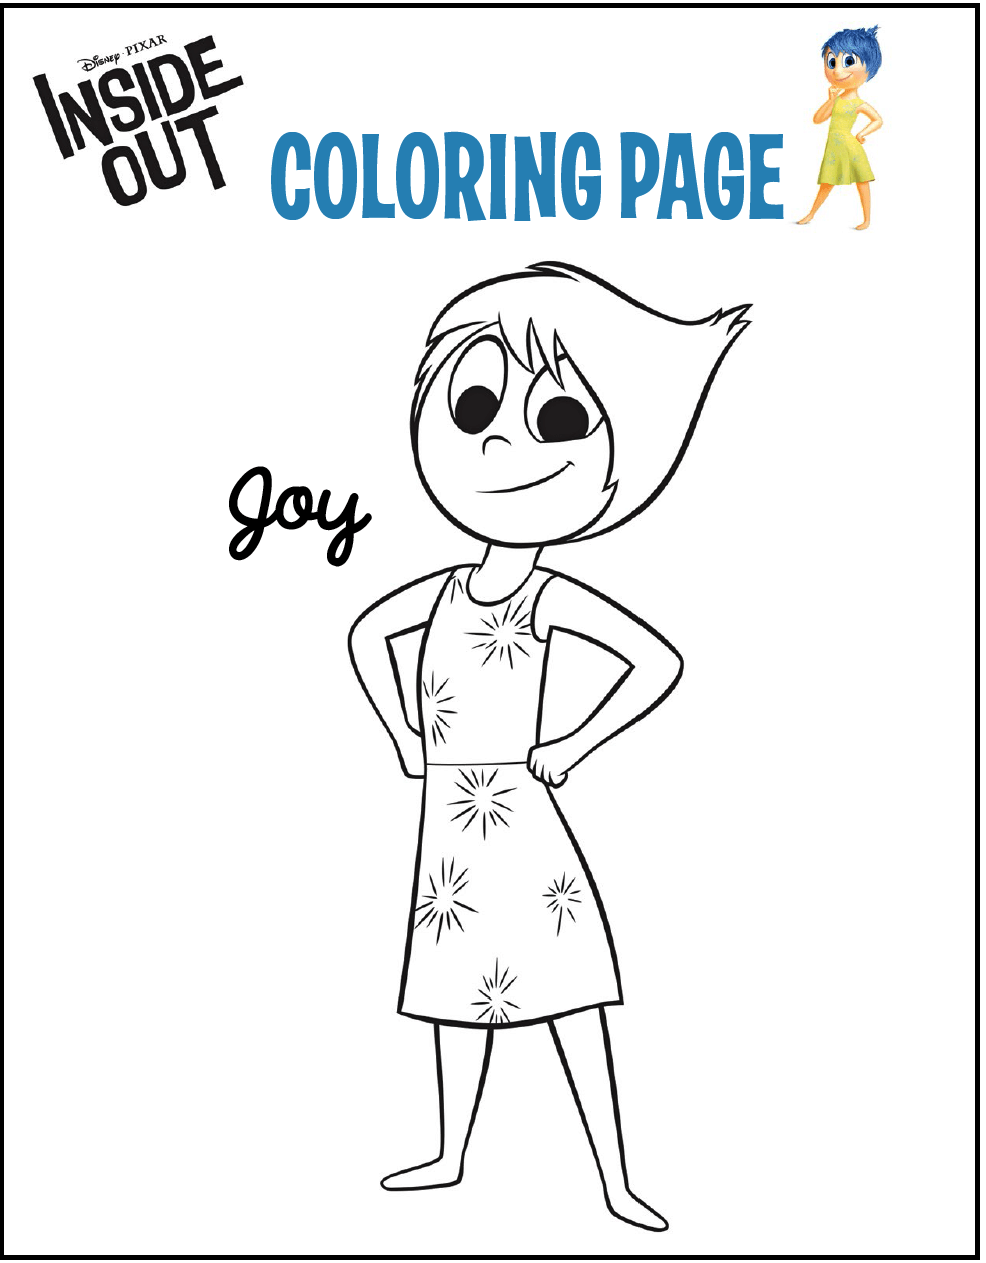 986x1263 Joy From Inside Out Coloring Page Animation Series Coloring